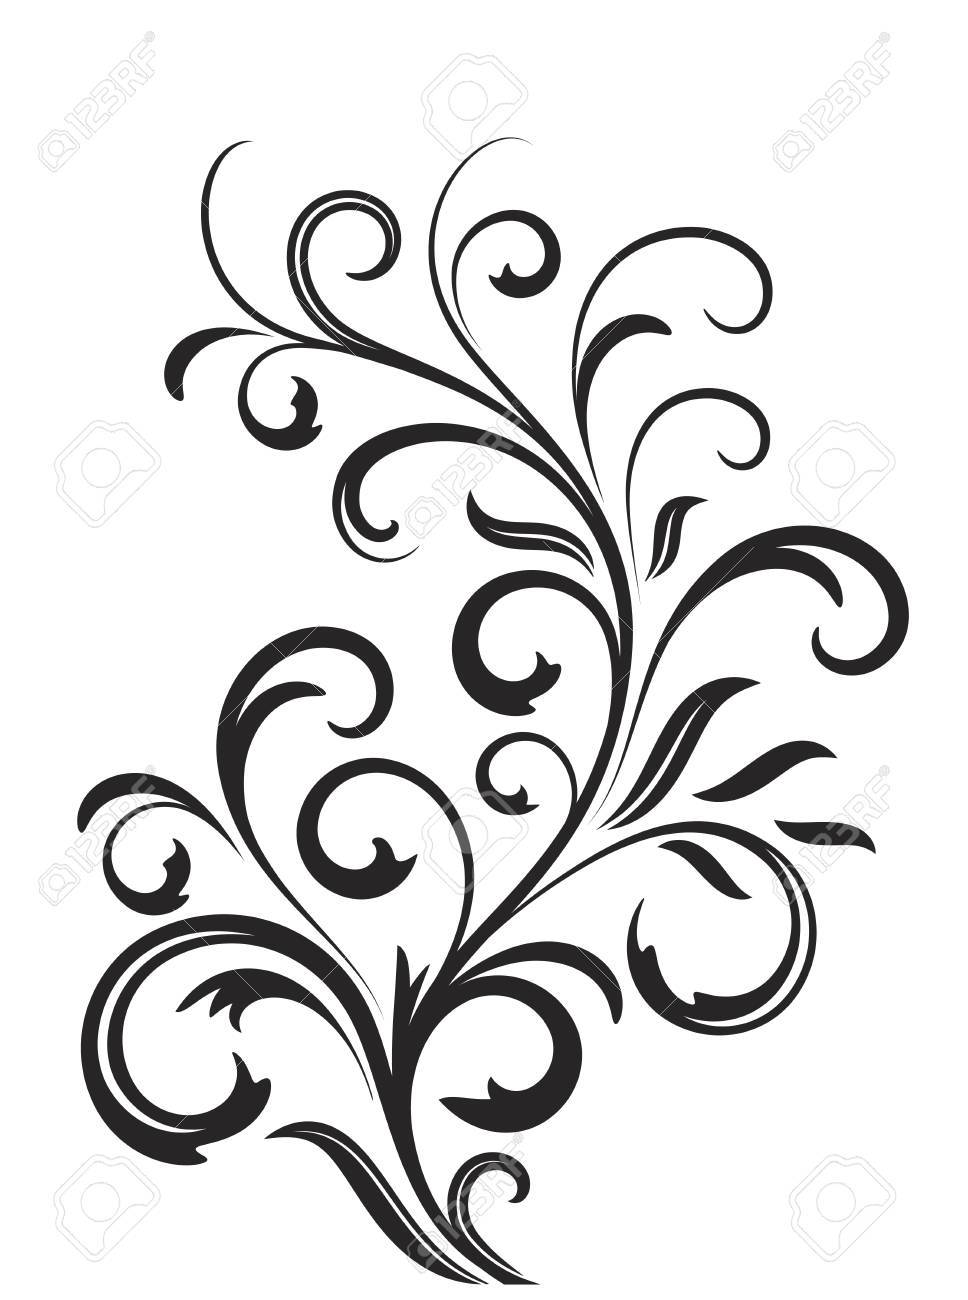 Abstract fancy flowers, stencil, decoration for card, window,